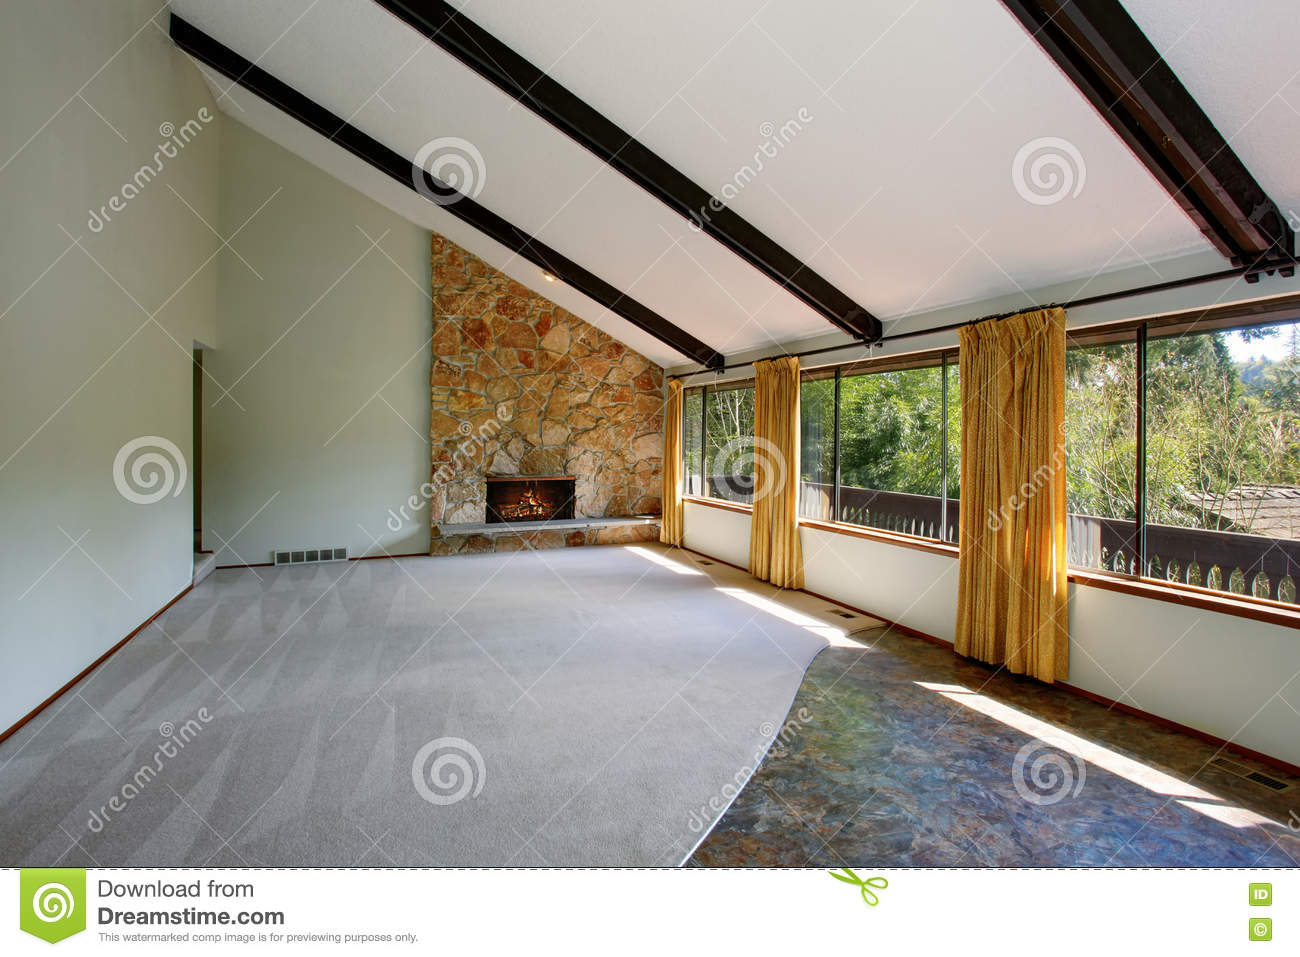 Beige Carpet Ceiling Curtains Fireplace Floor High Interior Living Room Spacious Stone Trim Unfurnished Vaulted